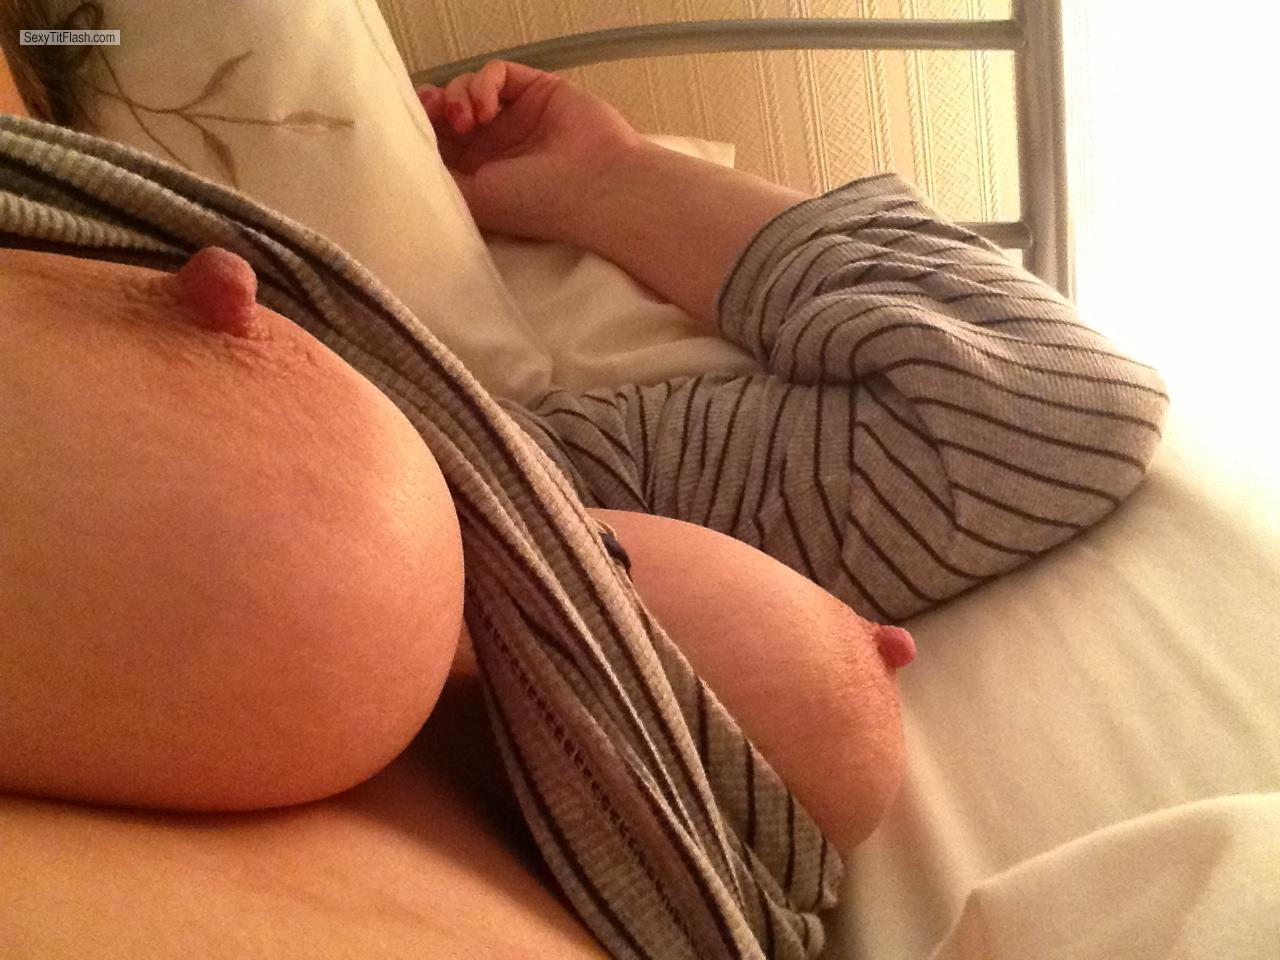 Tit Flash: My Very Big Tits By IPhone (Selfie) - Hazel from United Kingdom